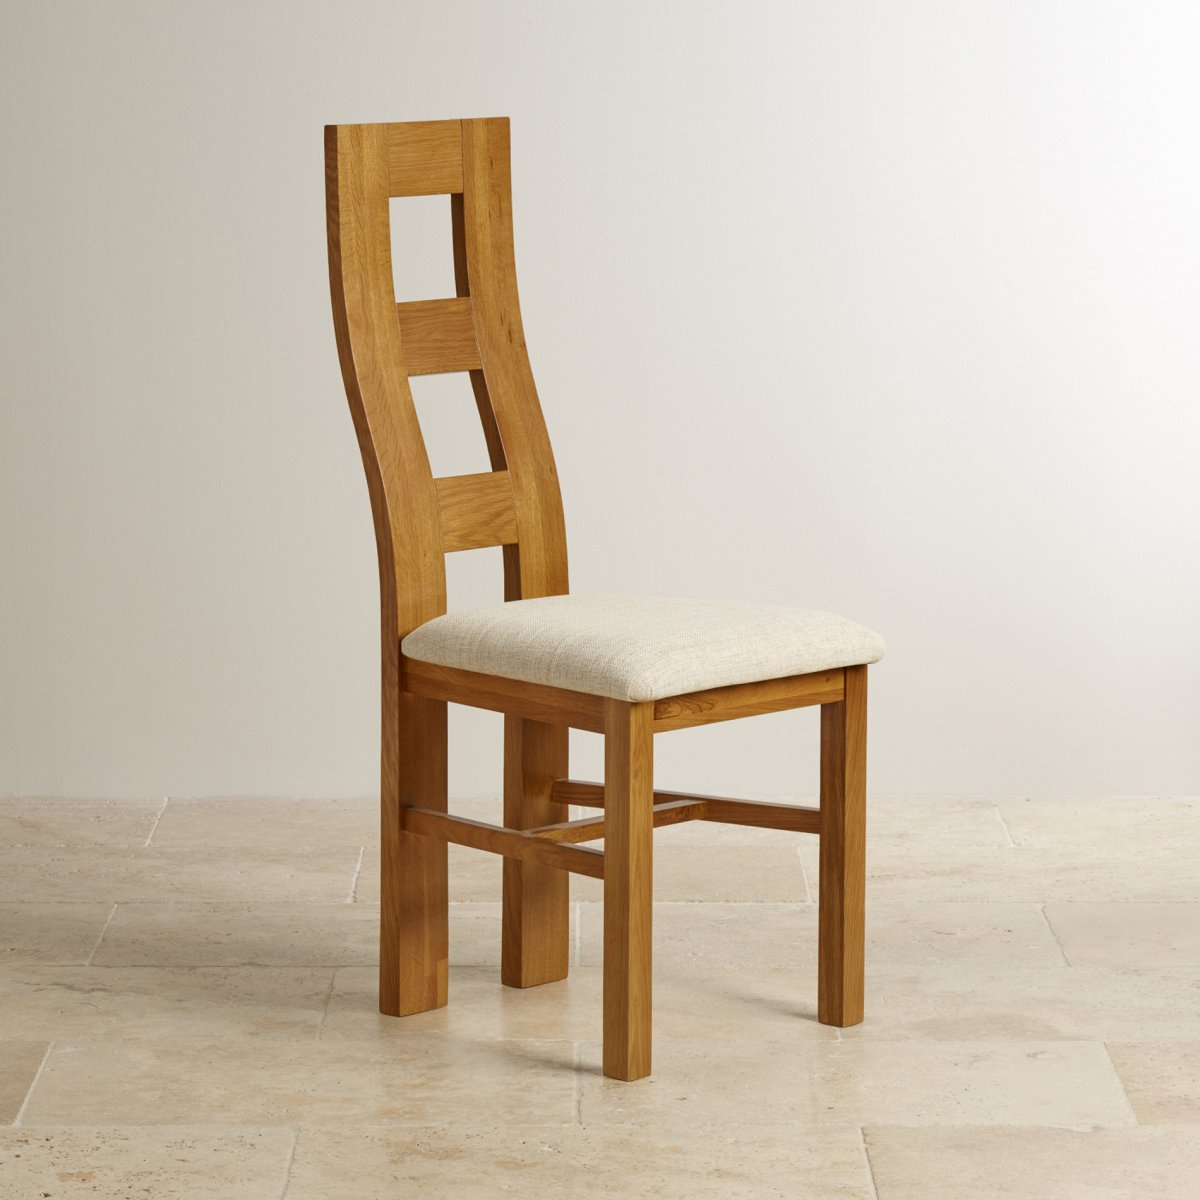 Oak Dining Chair: Wave Back Dining Chair In Rustic Solid Oak